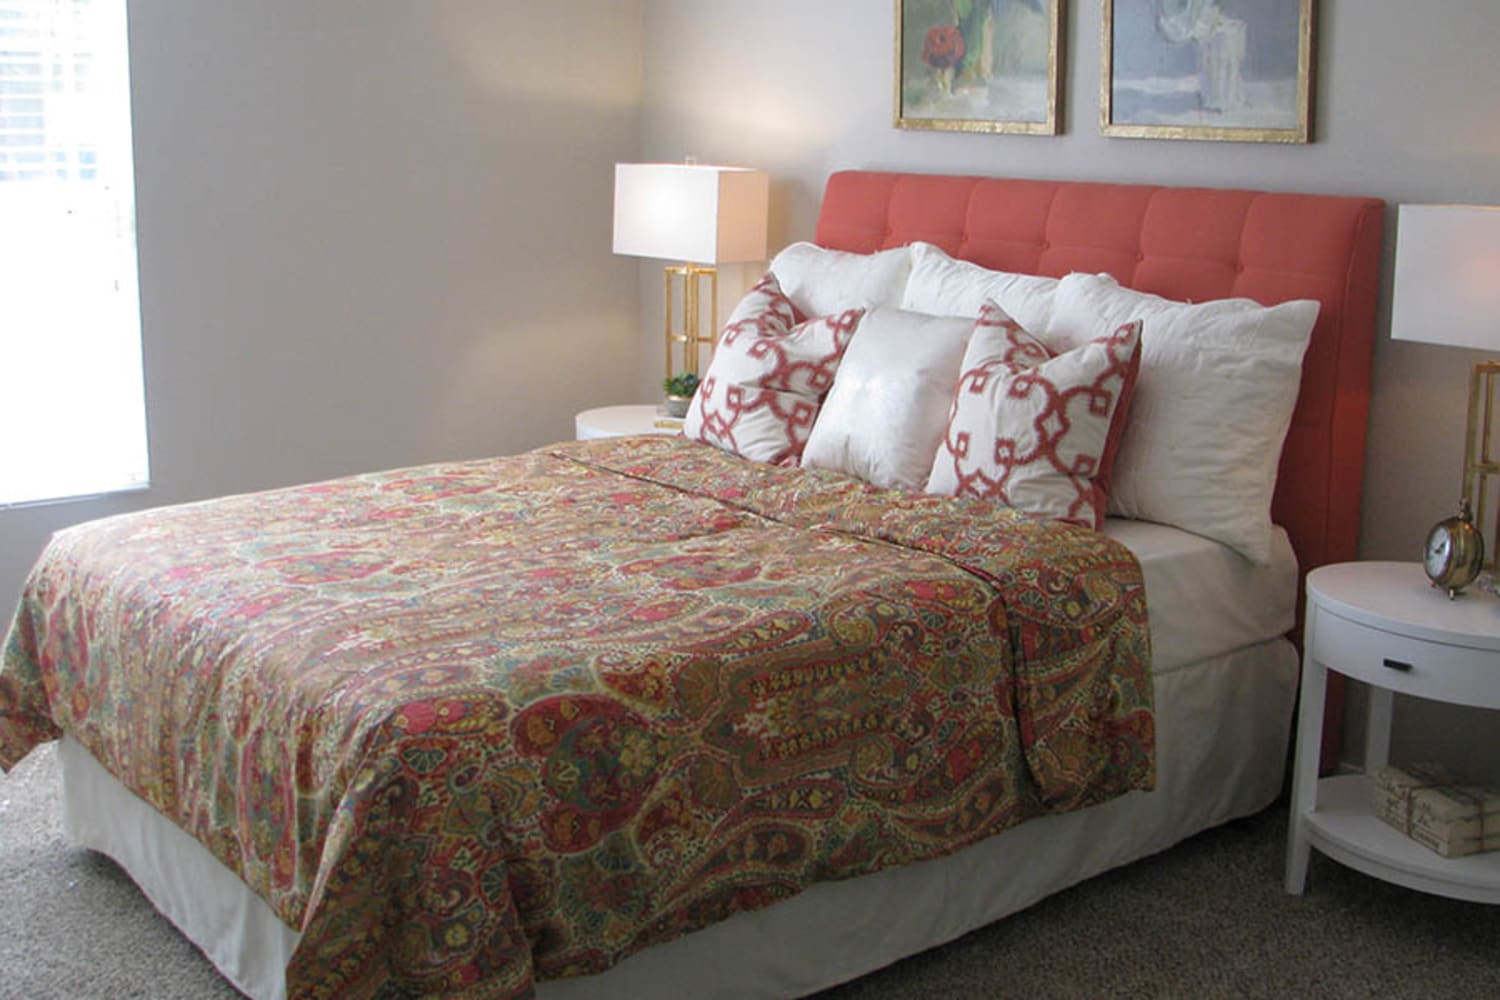 Ocotillo Bay Apartments in Chandler, Arizona, offer bedrooms with large windows to let the sunlight in